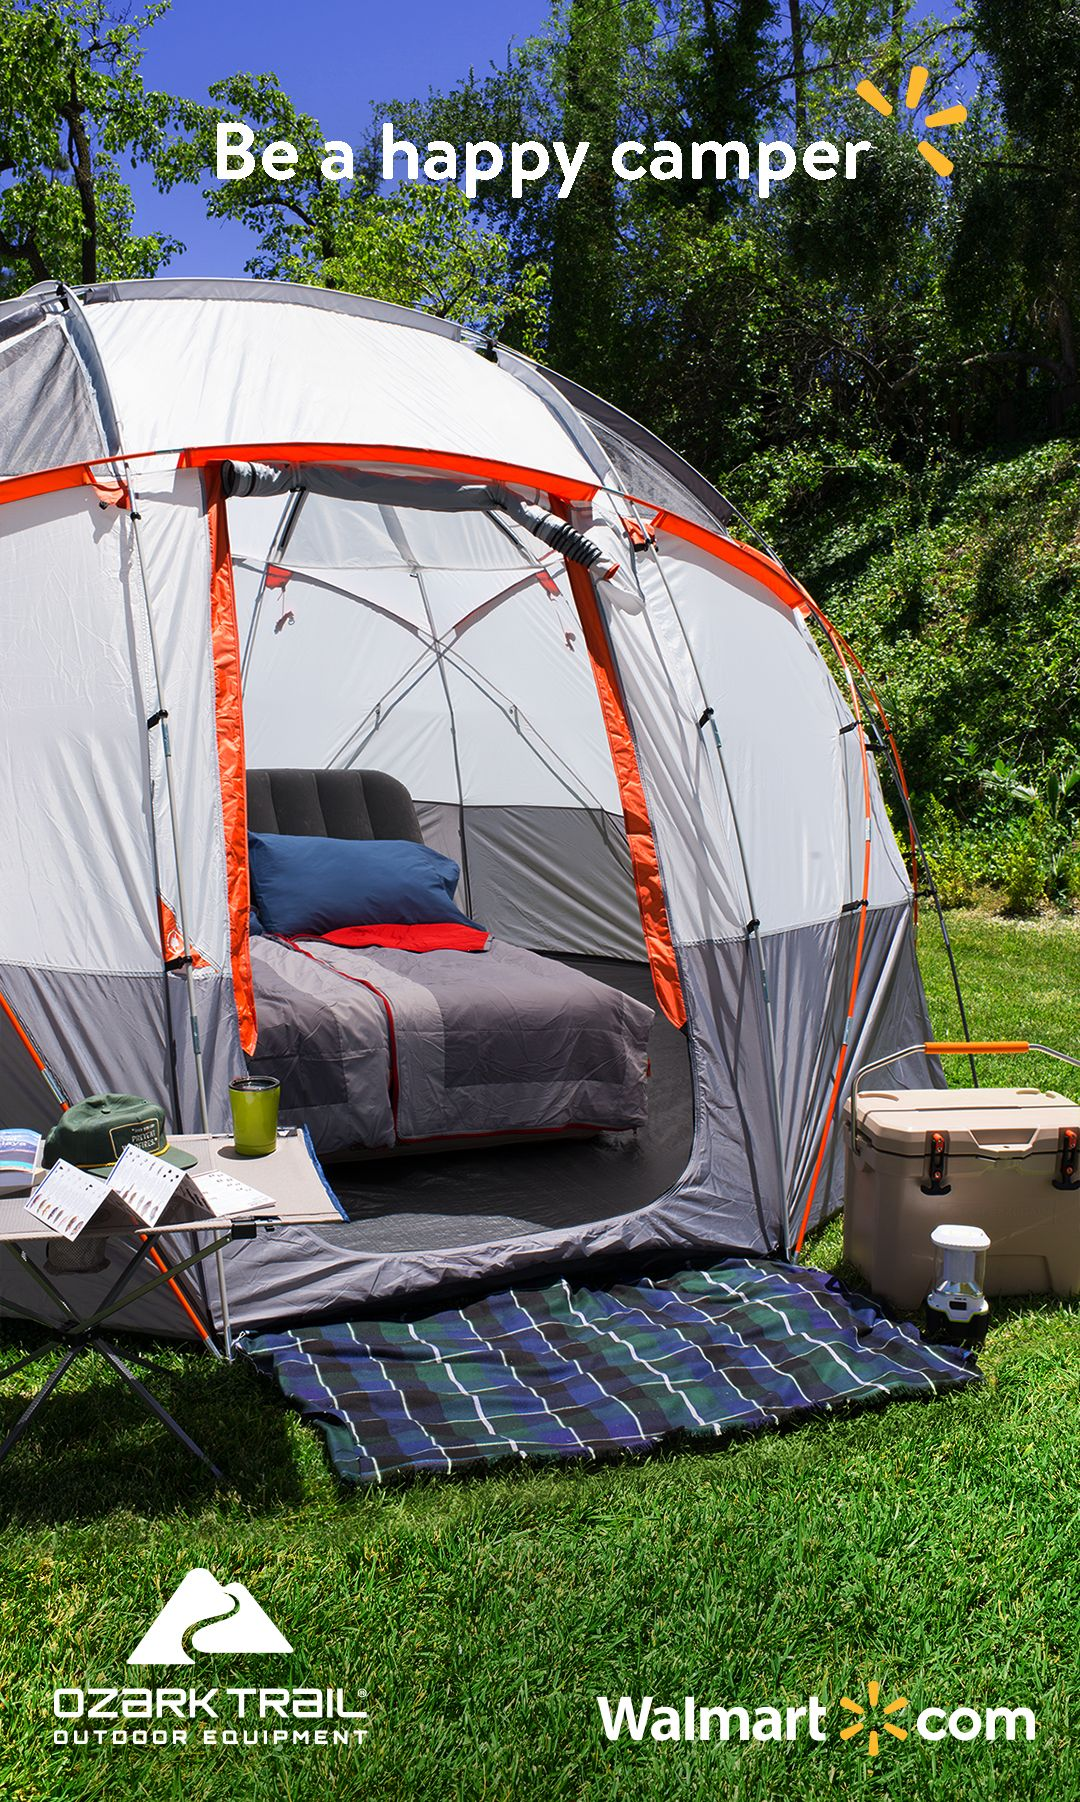 When It Comes To Camping Ozark Trail Doesn T Mess Around Find Quality Outdoor Gear That Provides Ultimate Comfort For The U Outdoor Space Design Tent Outdoor